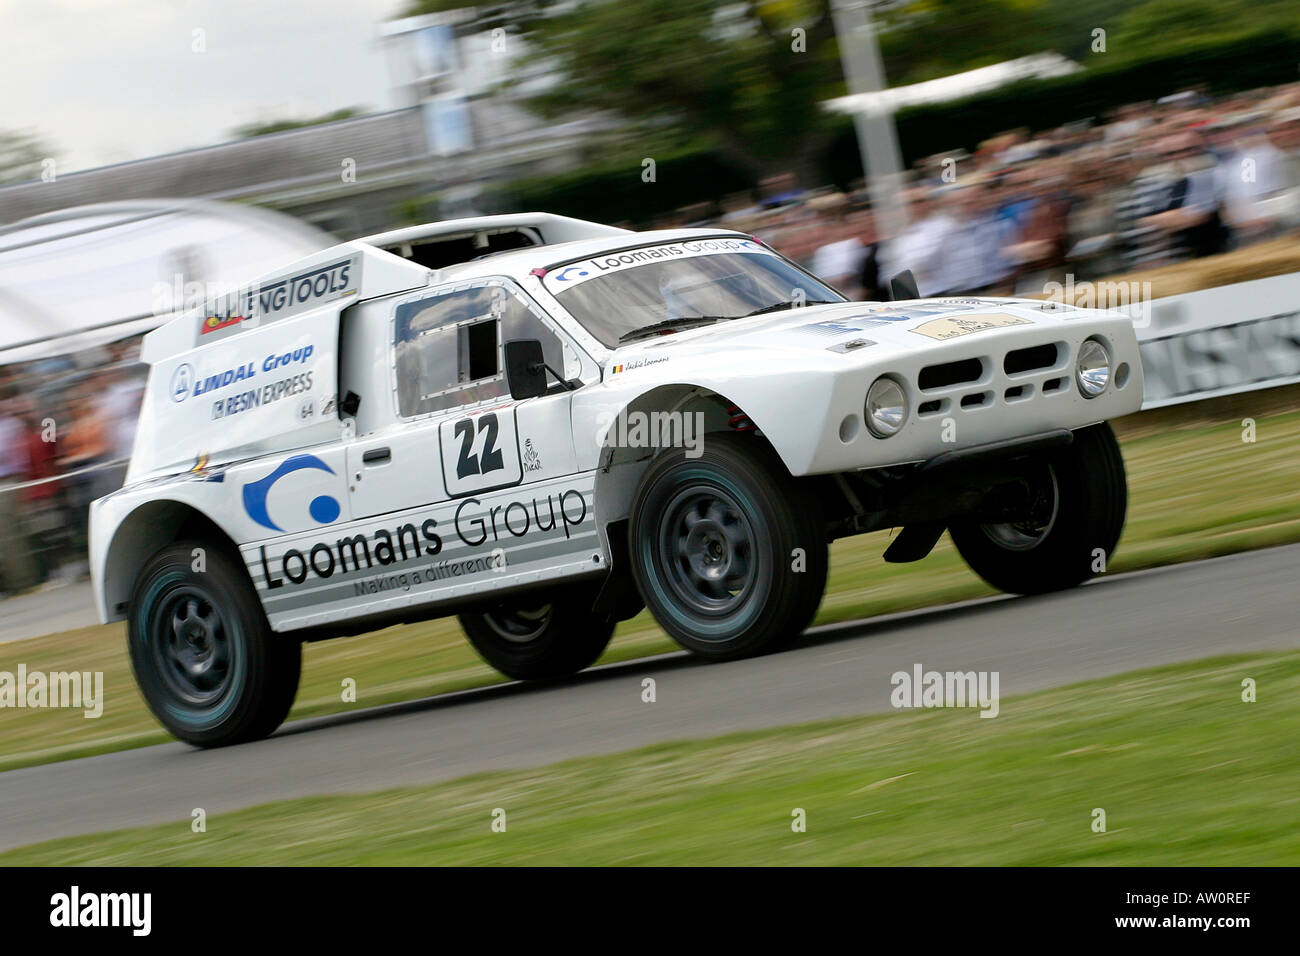 1986 MG Metro 6R4 at Goodwood Festival of Speed, Sussex, UK - Stock Image